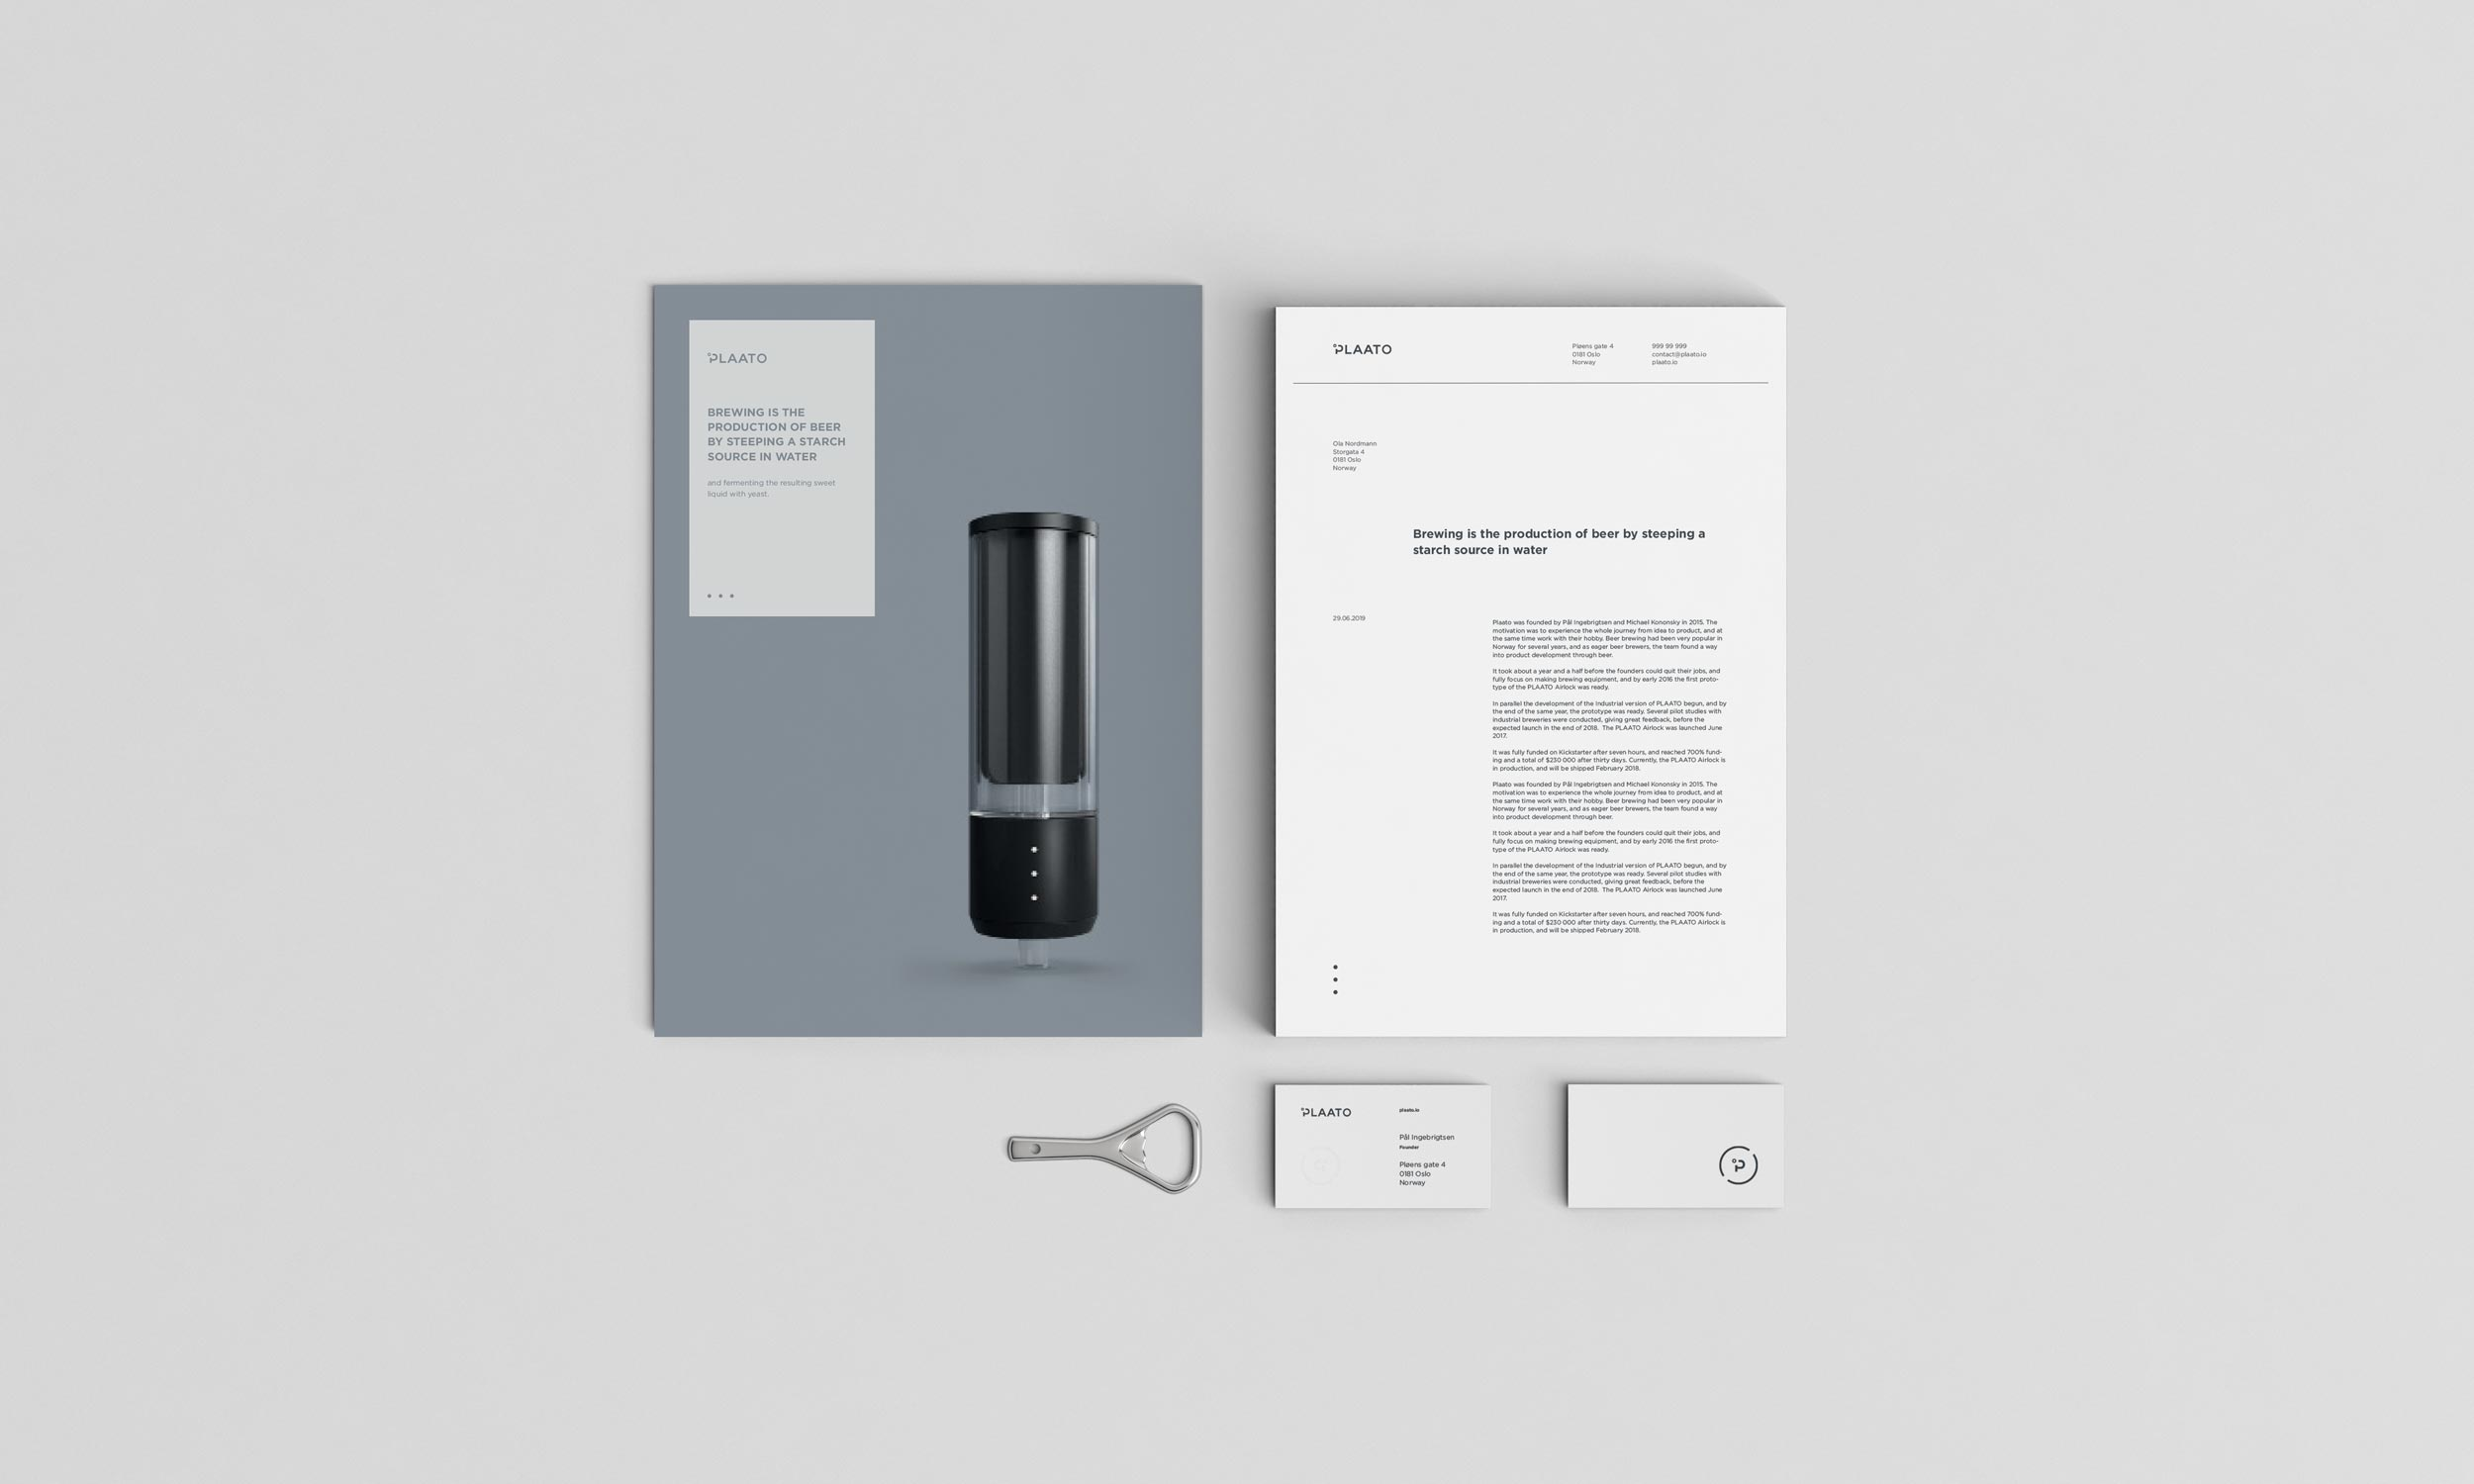 Plaato visual identity, designed by SBDS